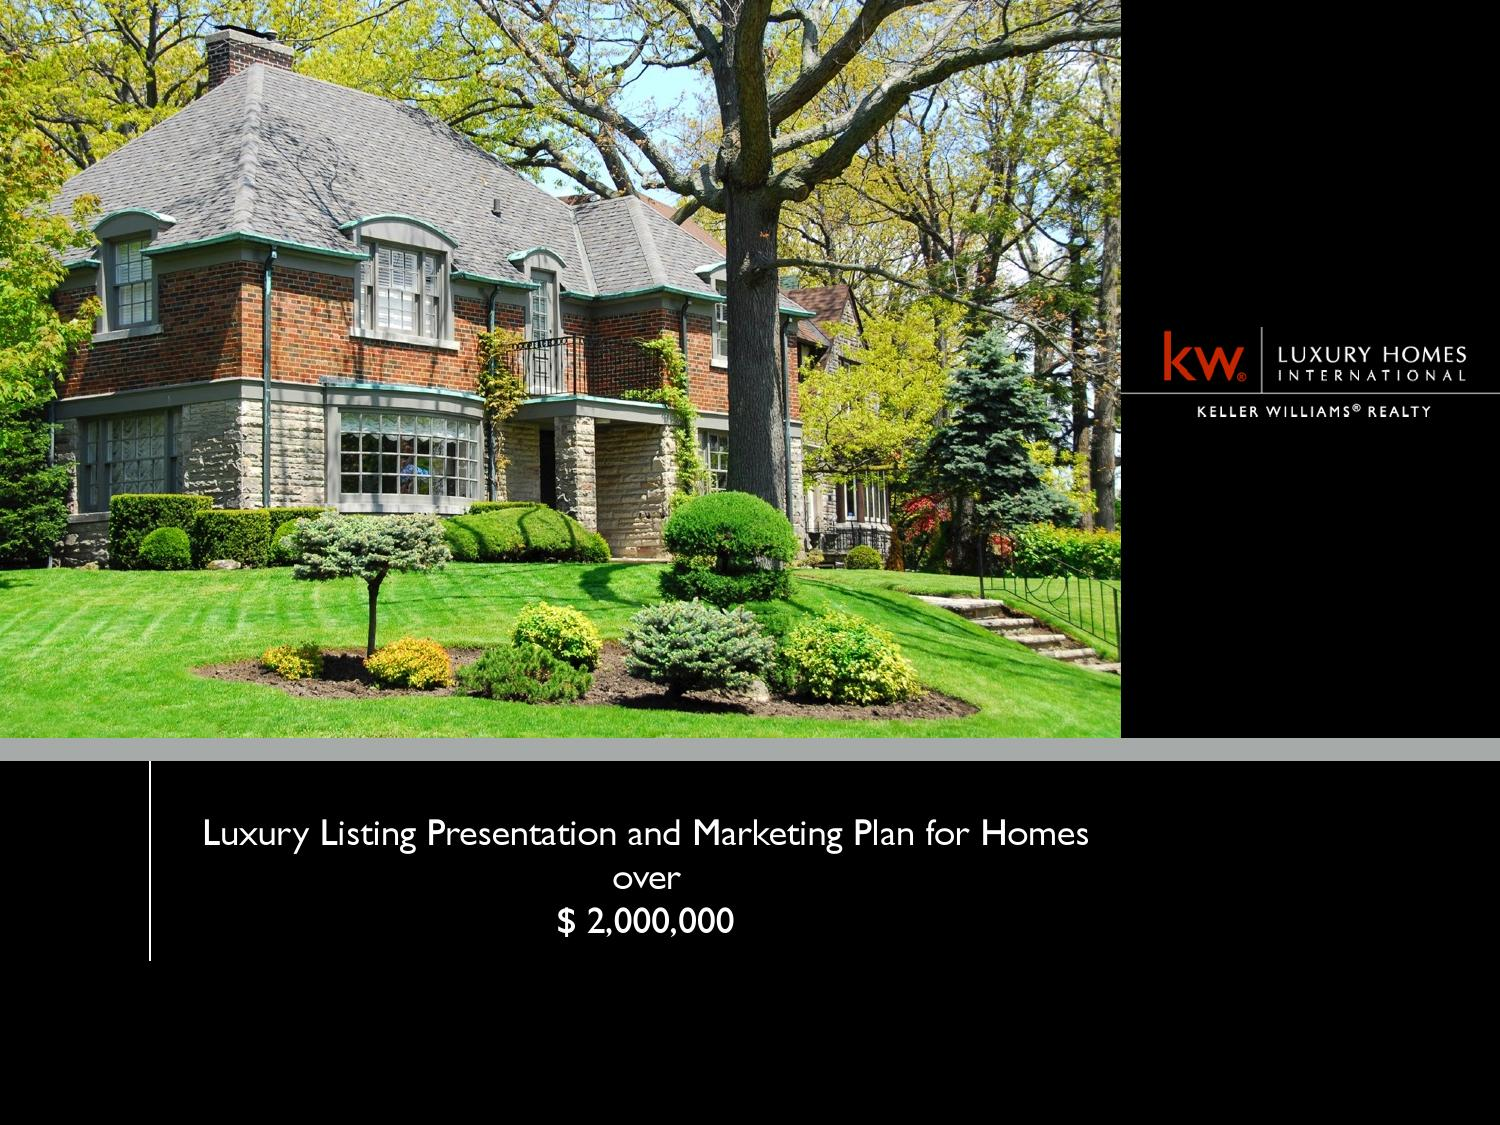 Marketing plan for listing a home